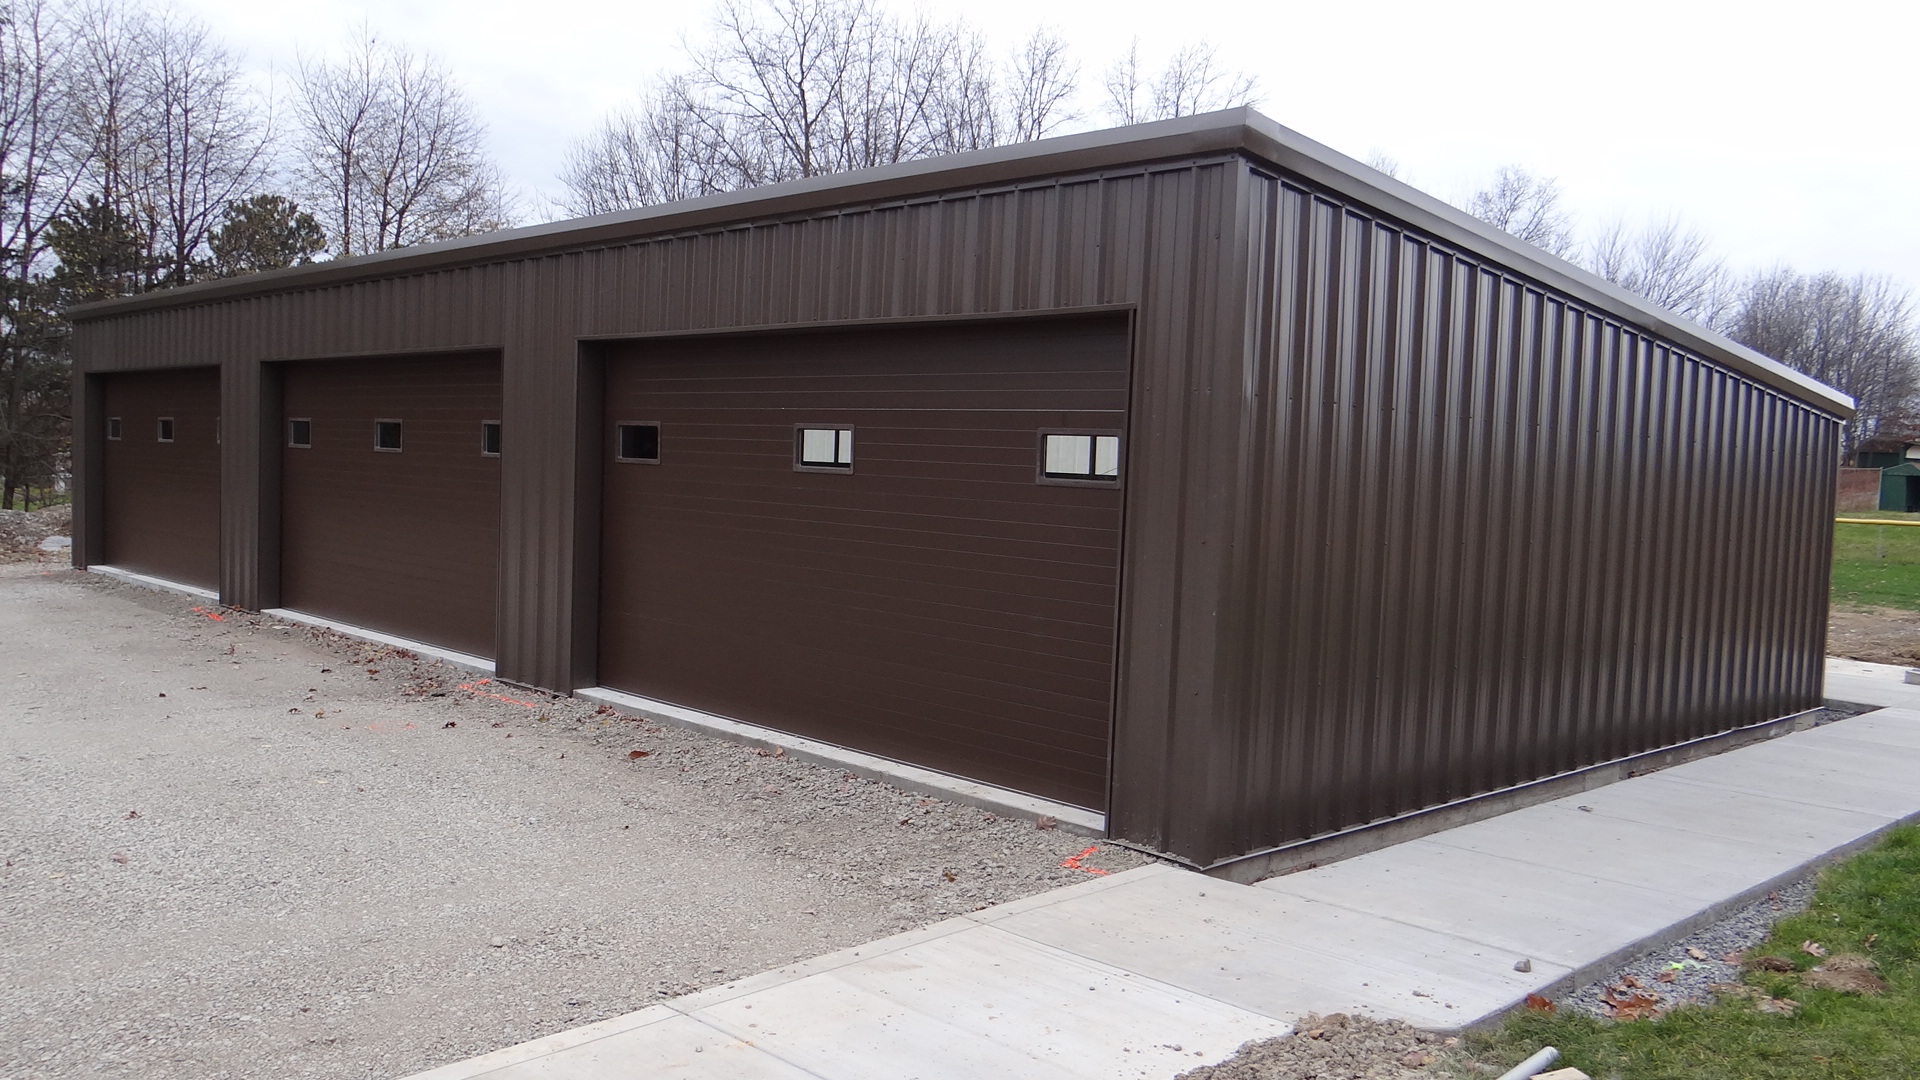 Garages fidelity steel buildings for Building a detached garage on a slope